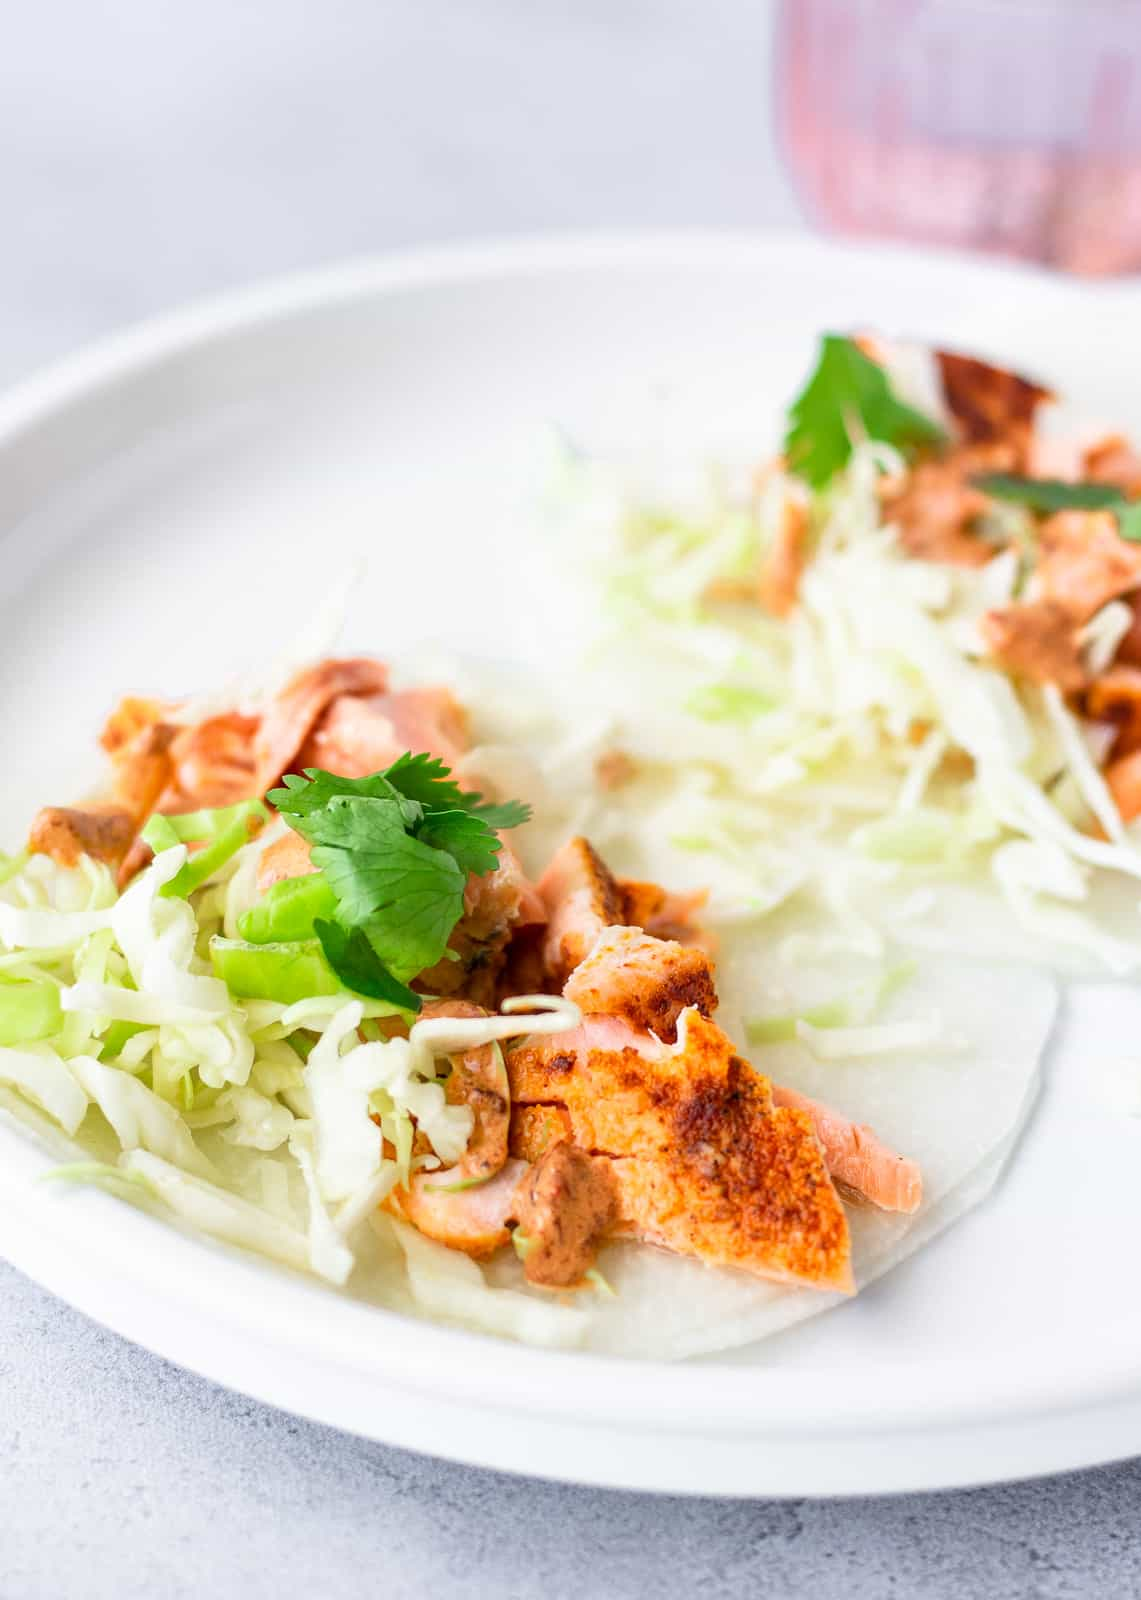 Flaked salmon on jicama wraps with shredded lettuce and cilantro.